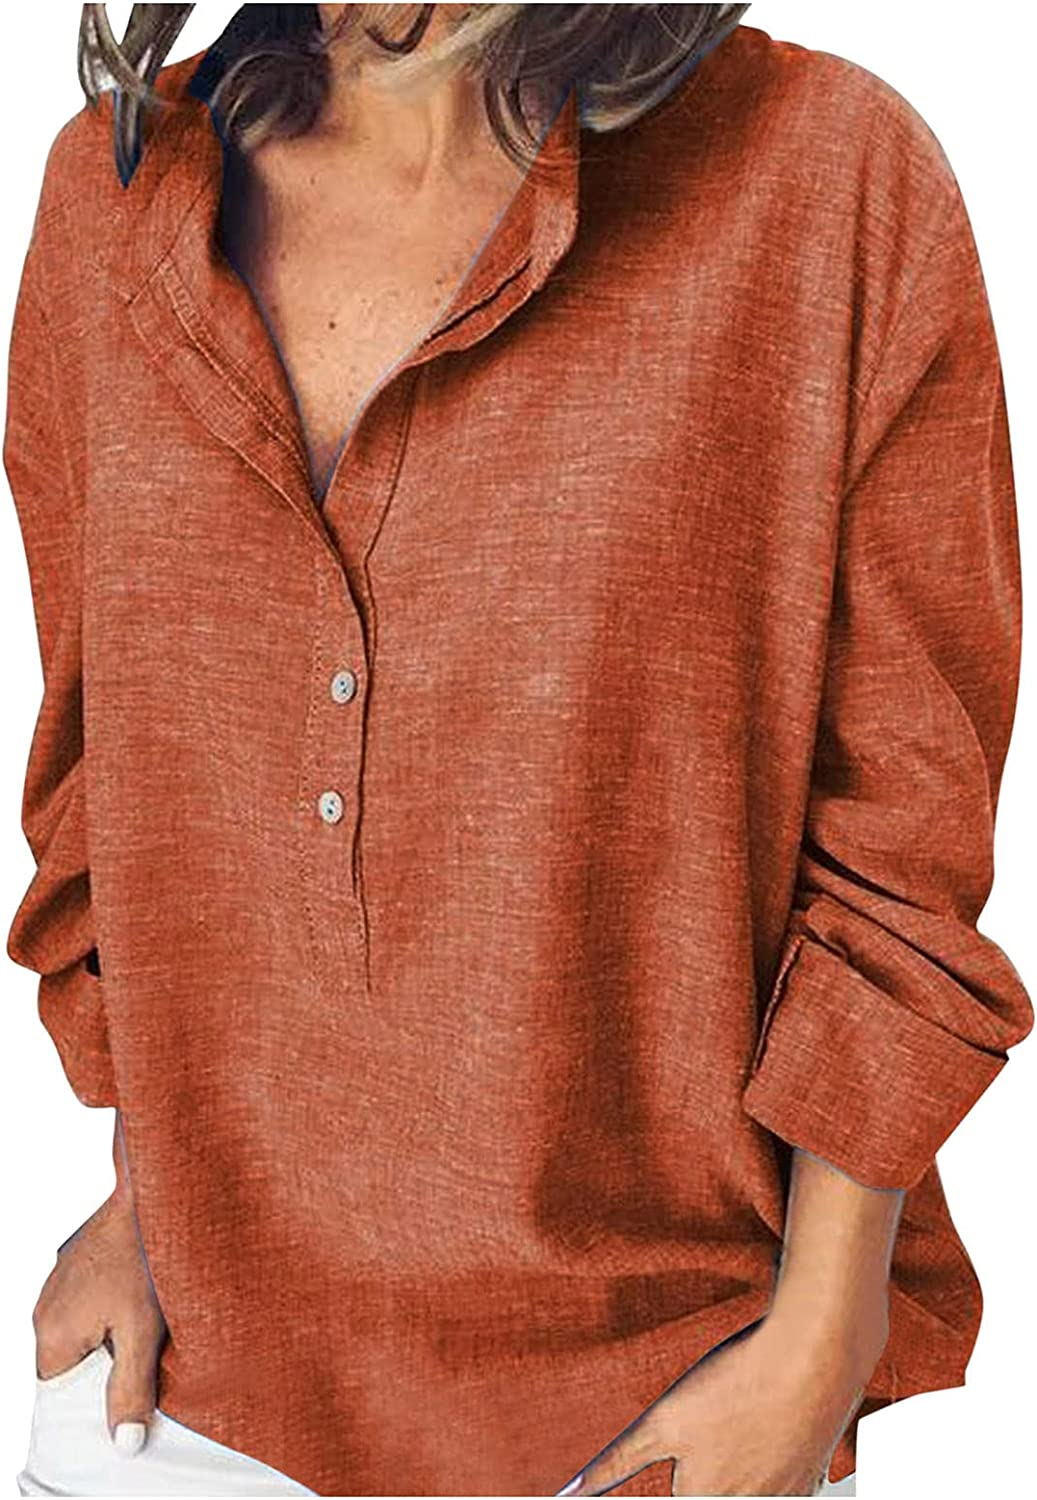 JSPOYOU Women Henley Shirts V Neck Long Sleeve Button Down Ribbed Knit Tunic Tops Casual Loose Tunic Tee